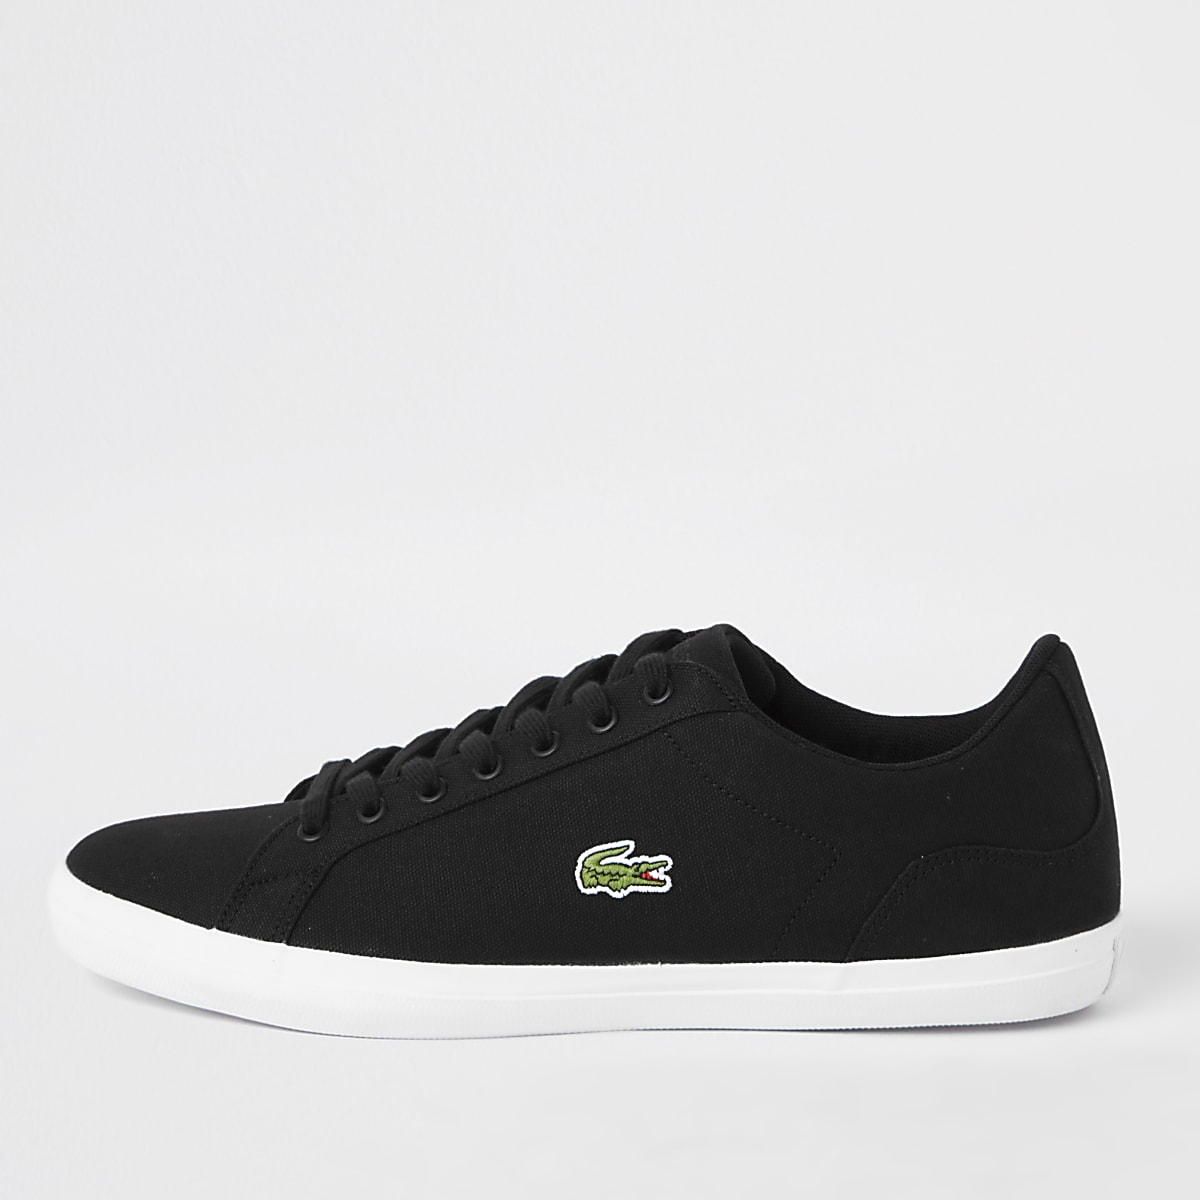 b721dddb83cc Lacoste Lerond black trainers - Trainers - Shoes   Boots - men